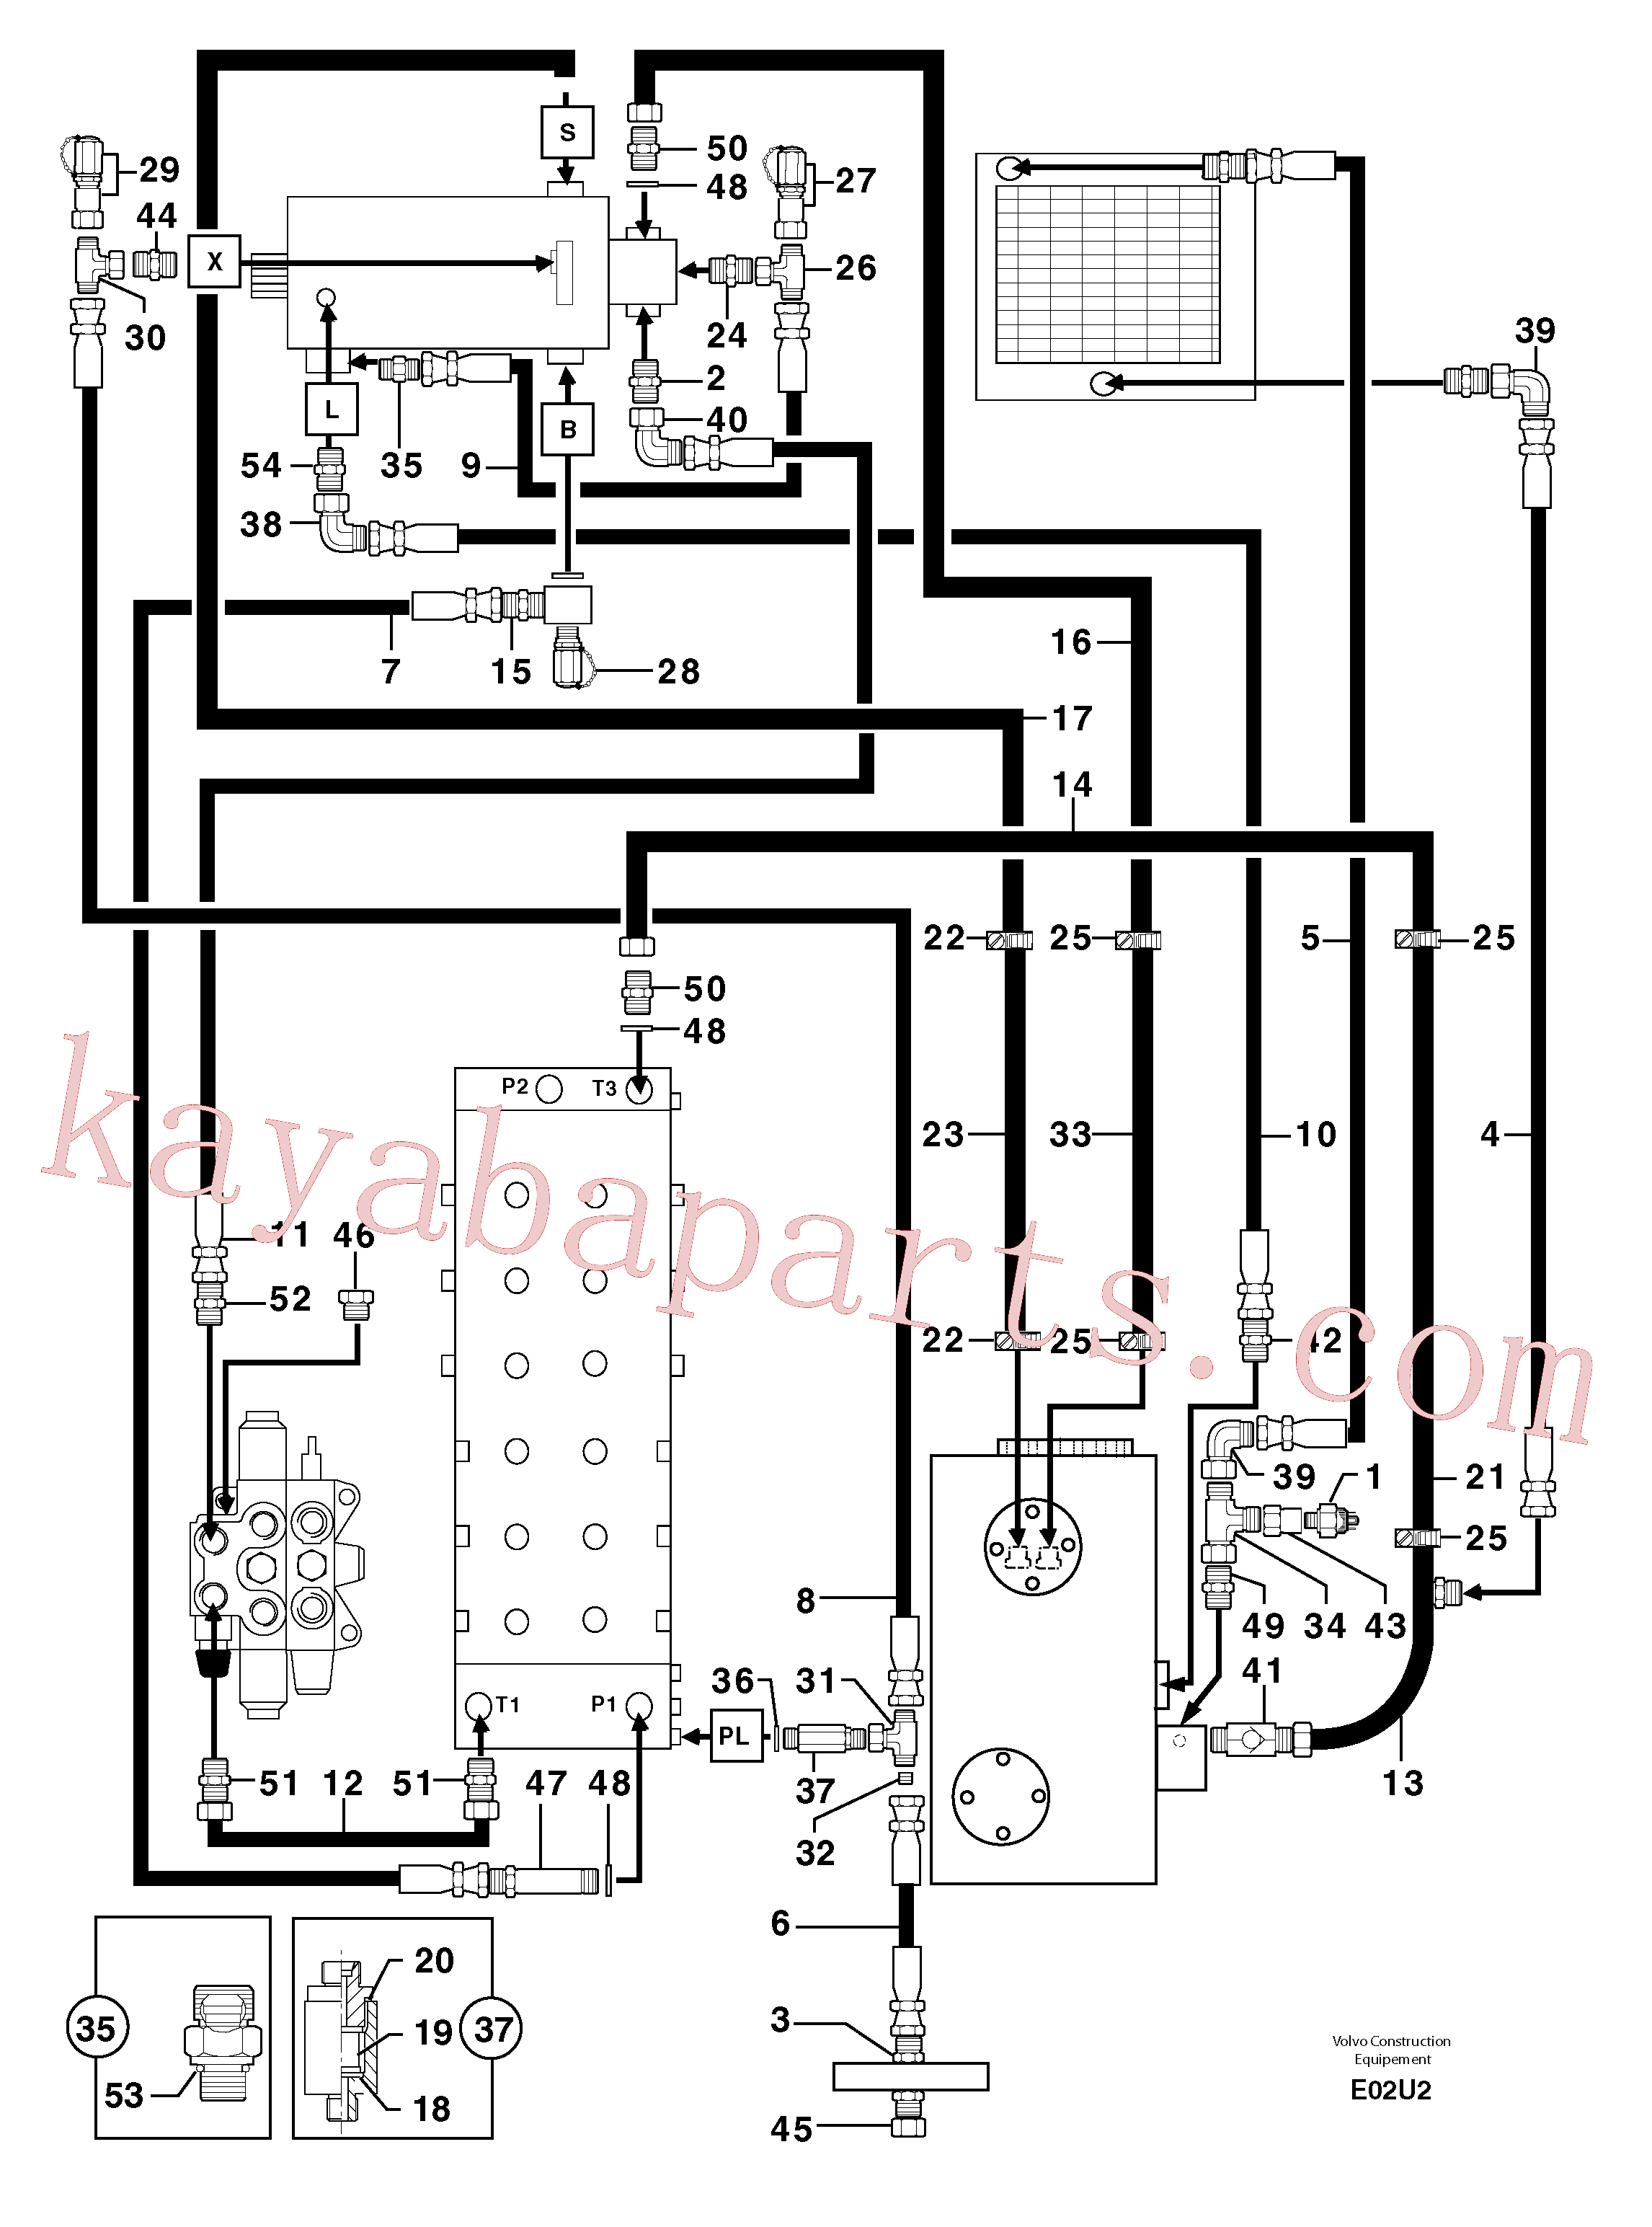 PJ6010154 for Volvo Attachments supply and return circuit(E02U2 assembly)